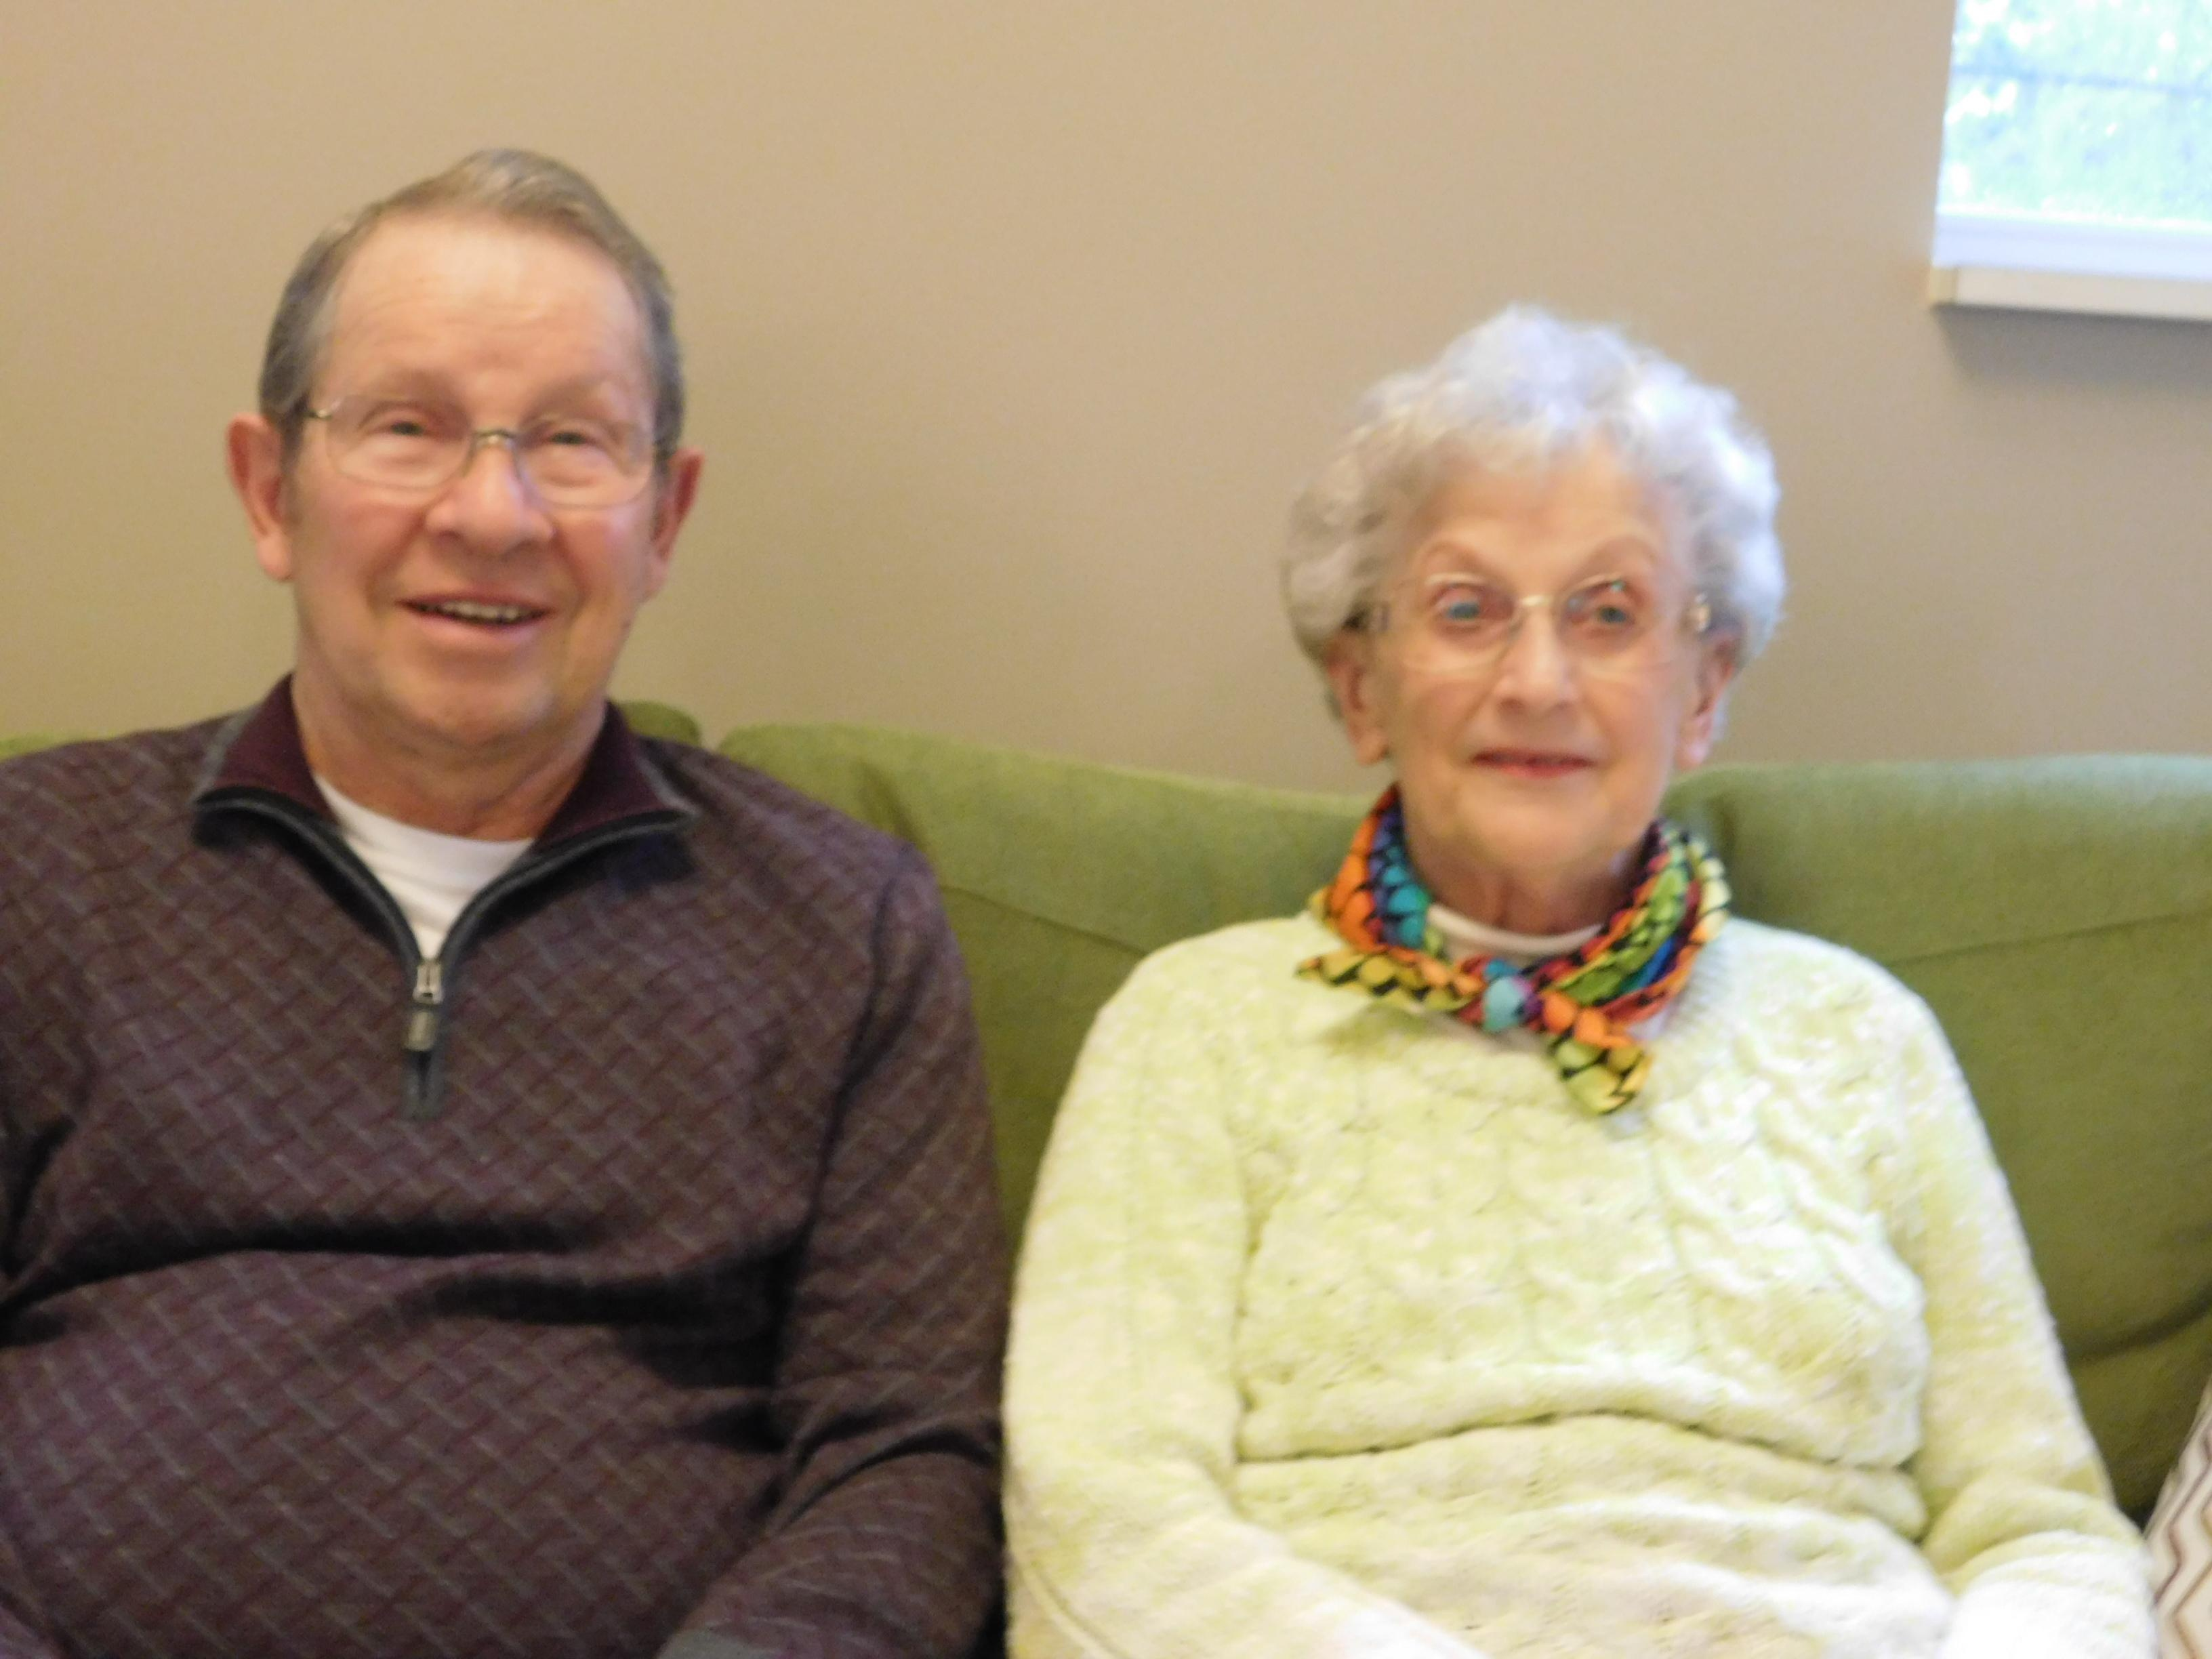 John and Betty walker sitting on a couch posing for the camera